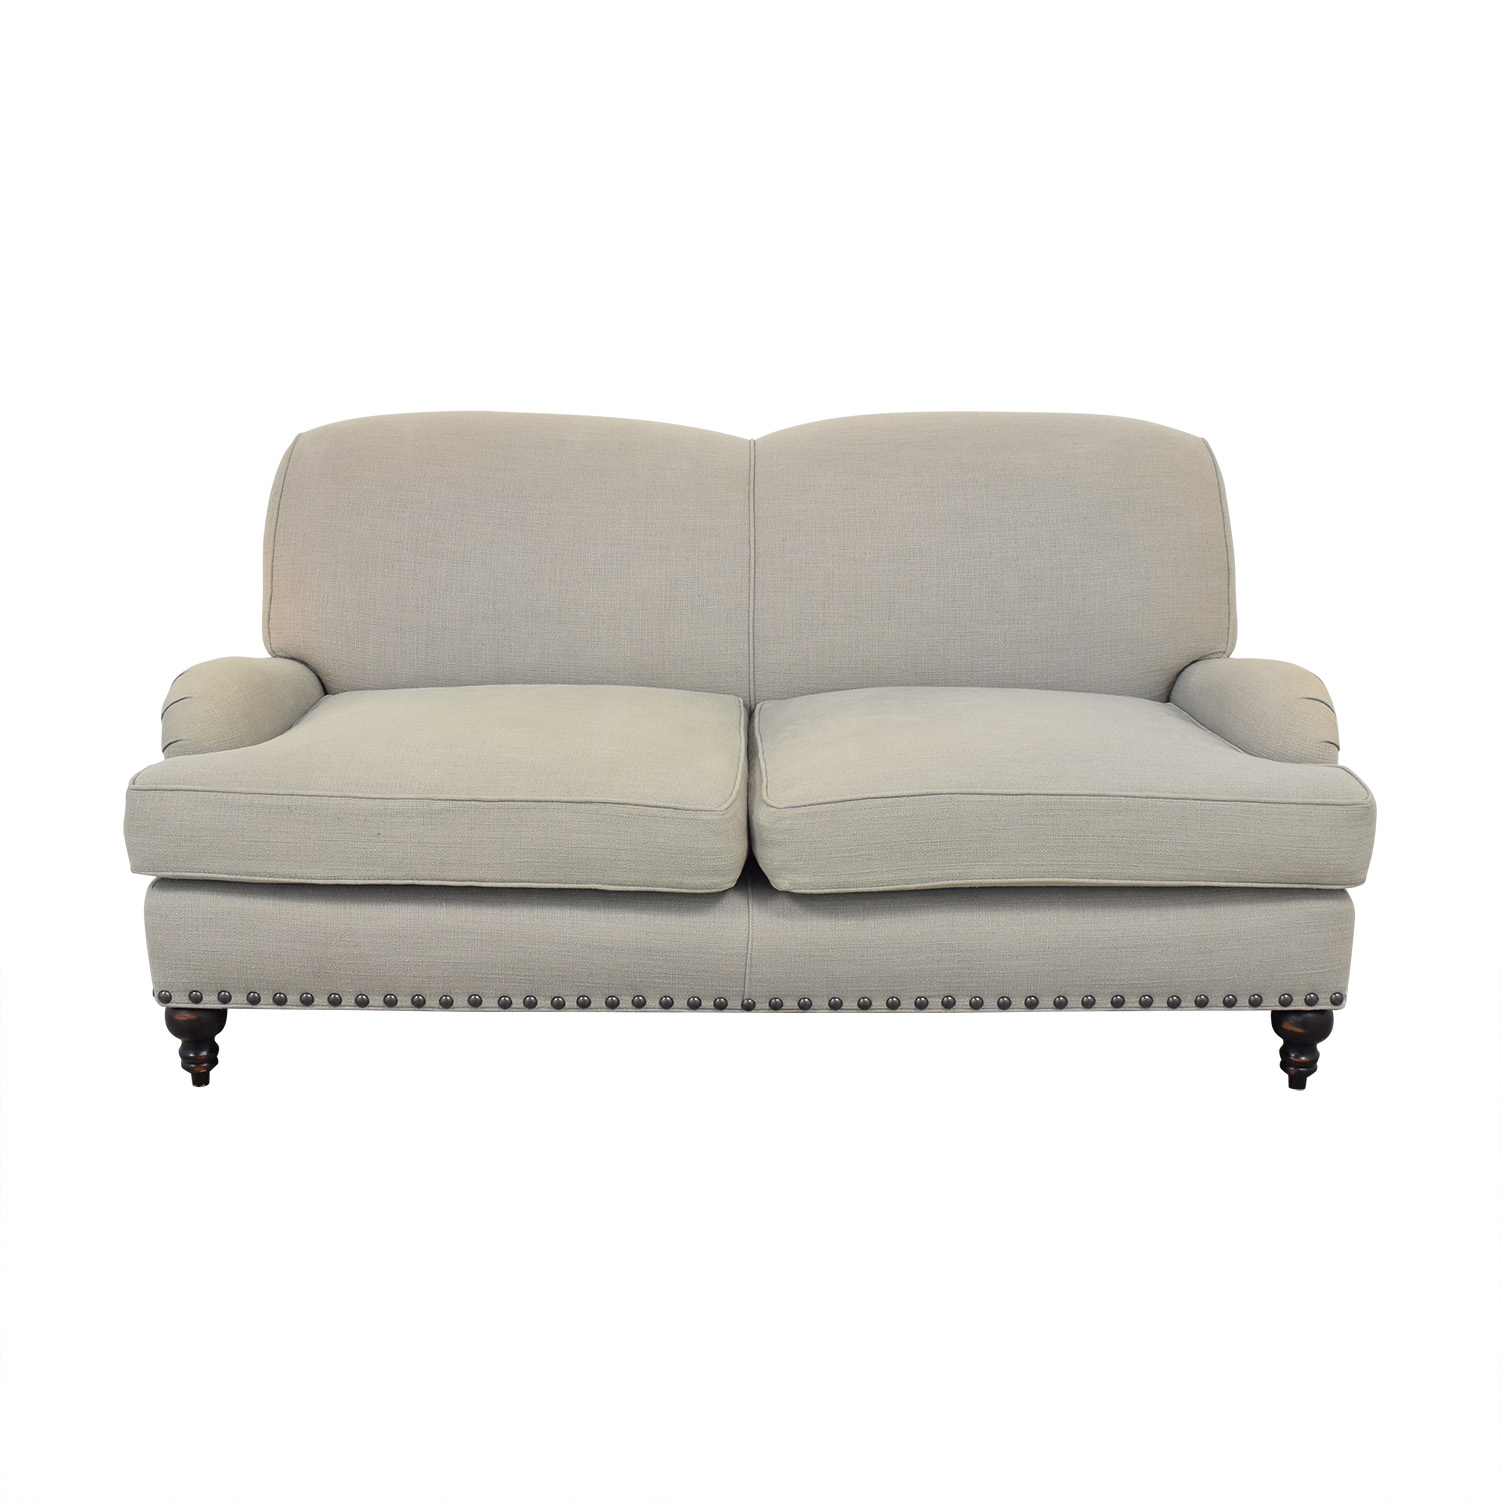 Arhaus Outerbanks Sofa / Classic Sofas